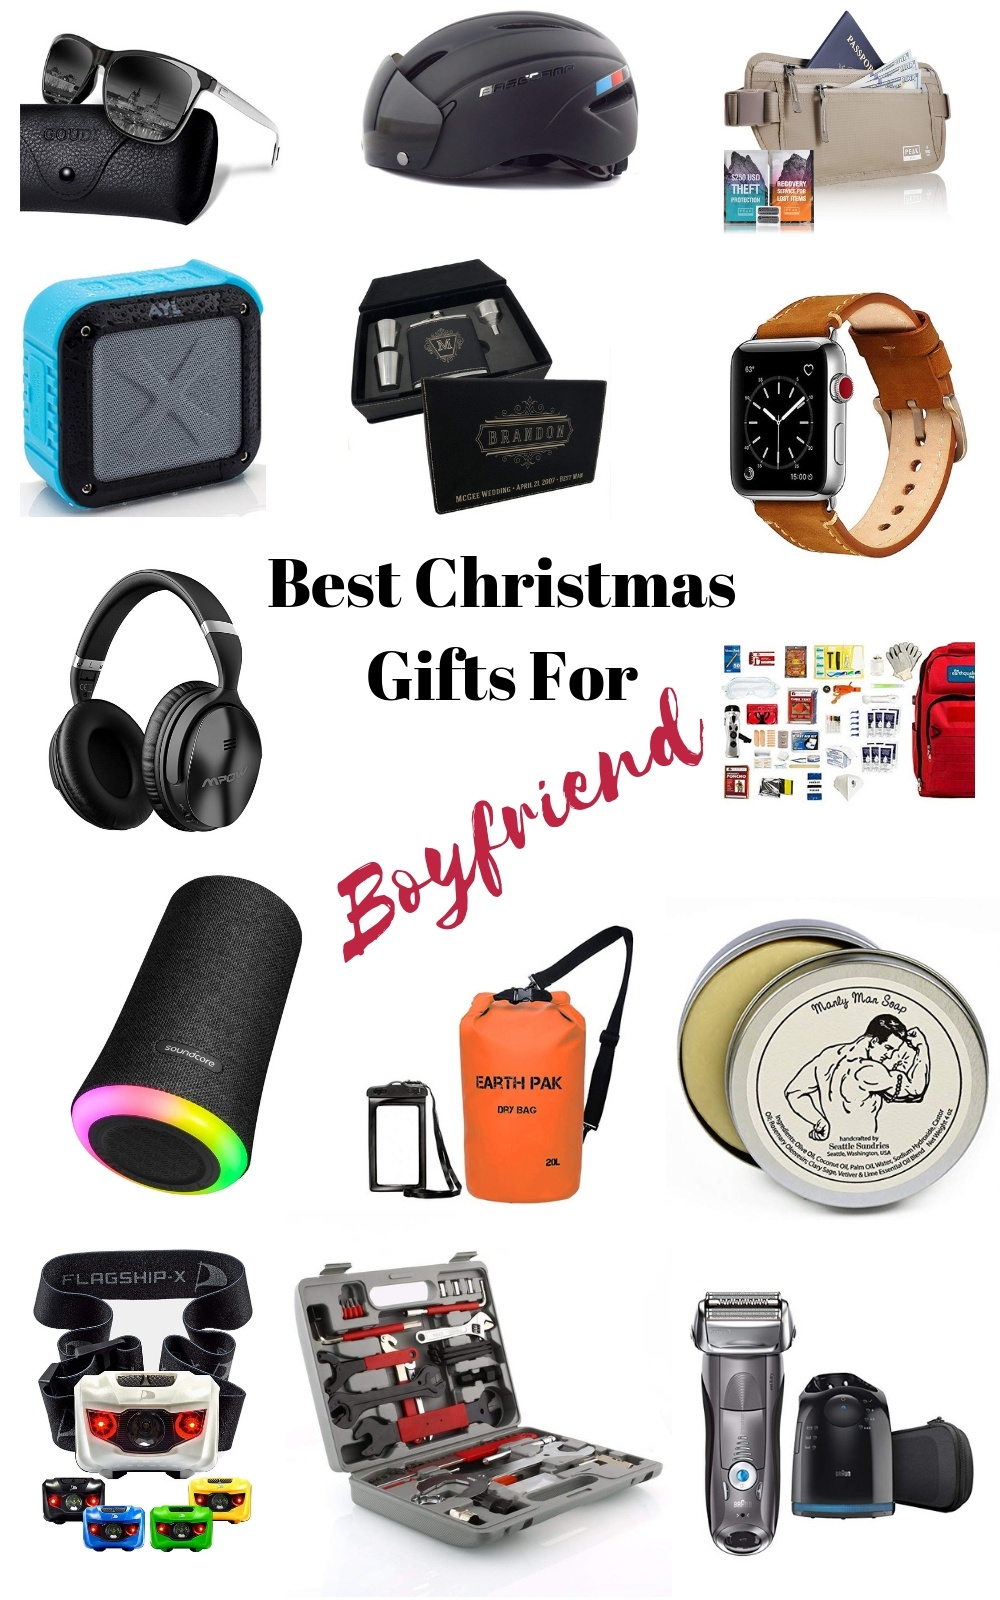 Christmas Gift Ideas For New Boyfriend.What Is A Good Christmas Present For A New Girlfriend